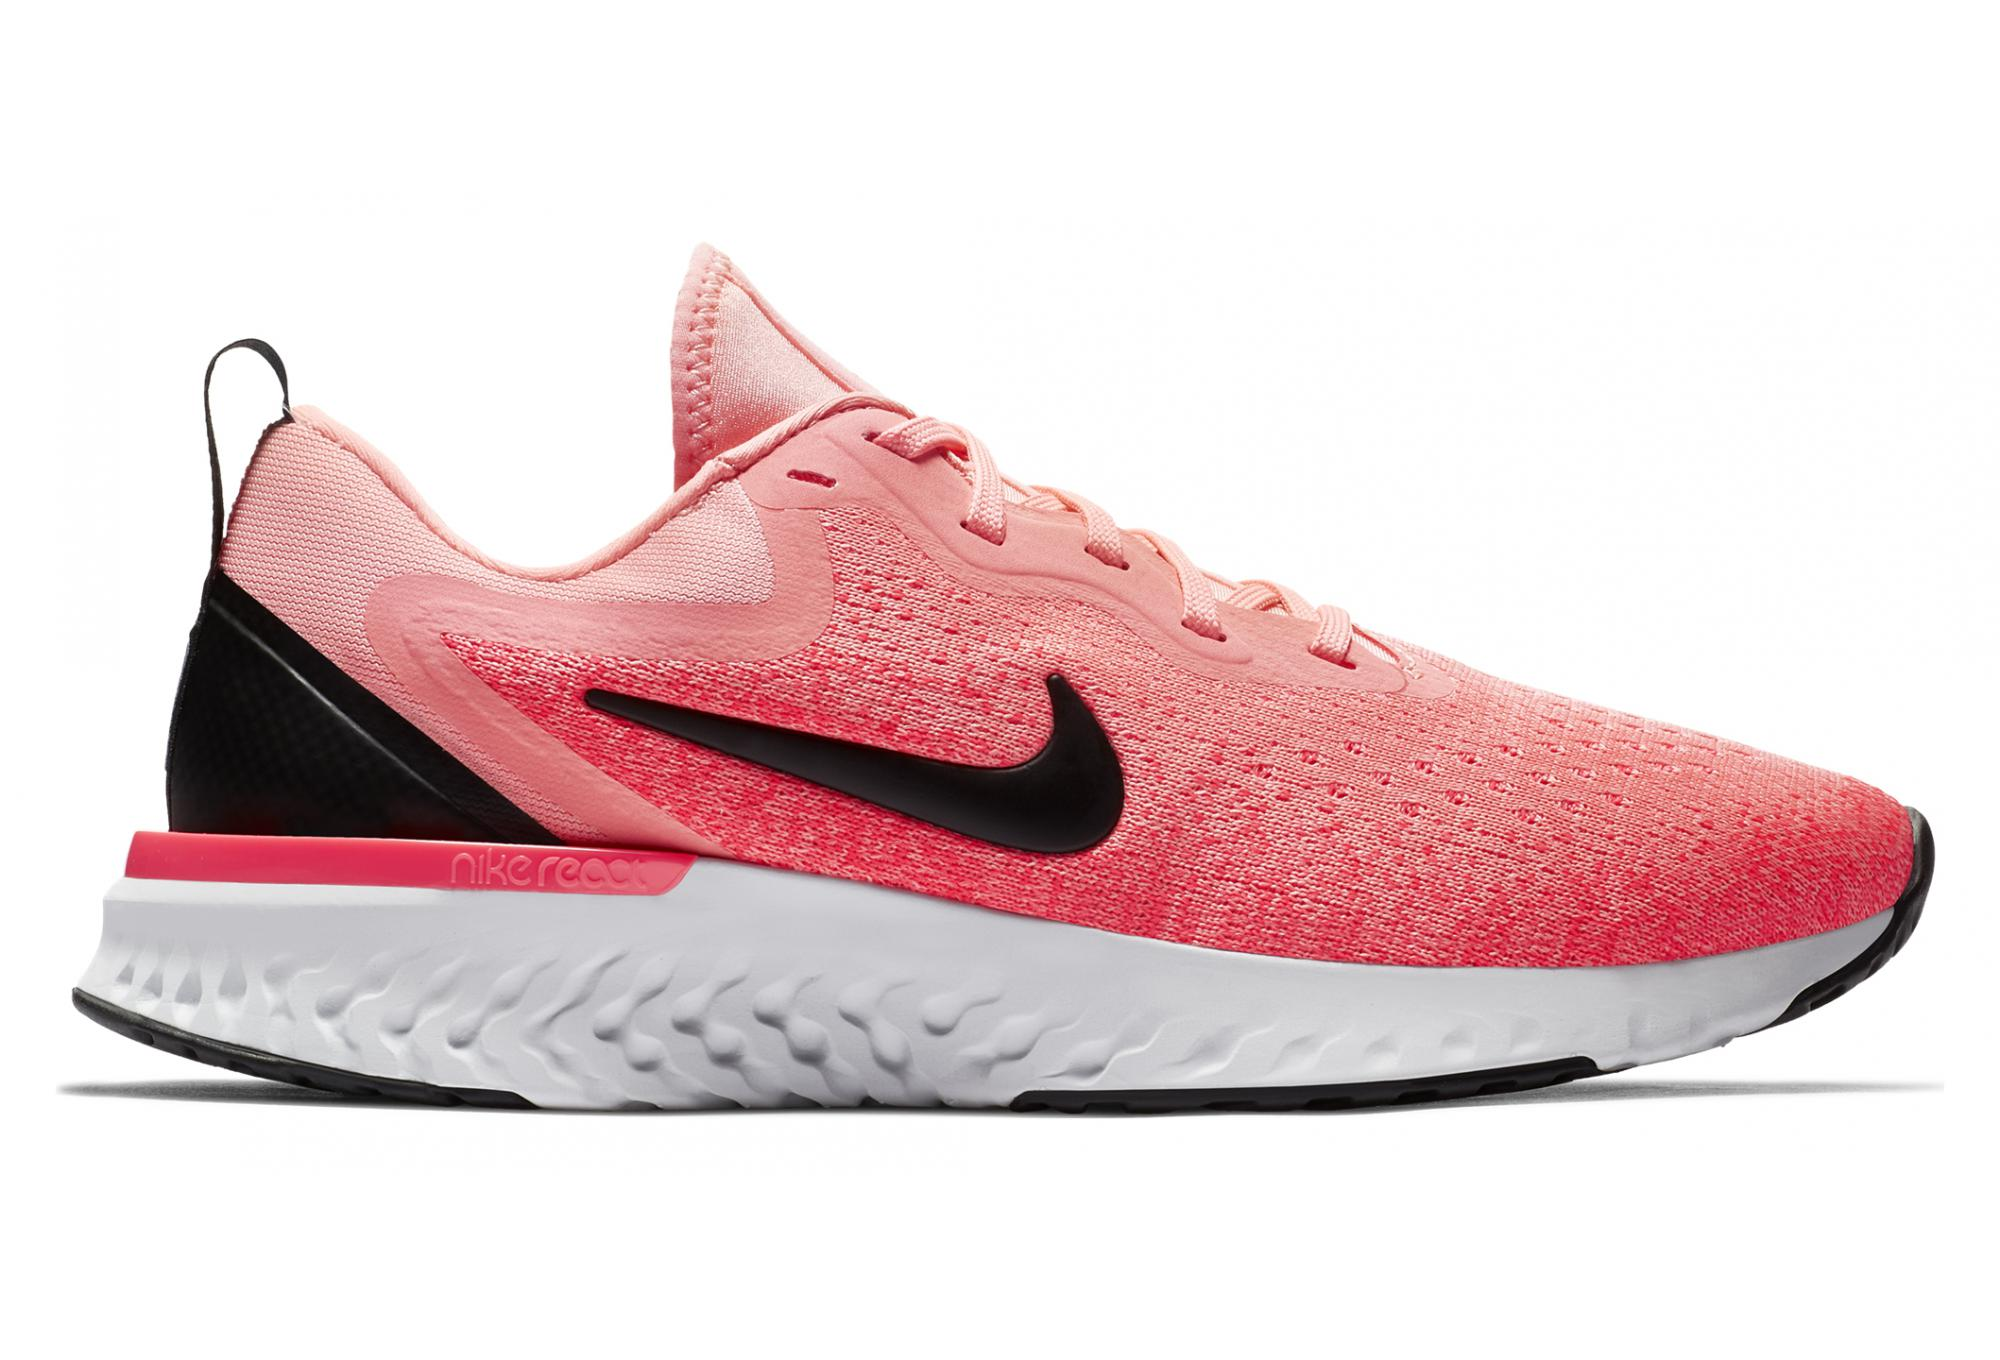 3558b7fc9910 Nike Odyssey React Women s Shoes Pink